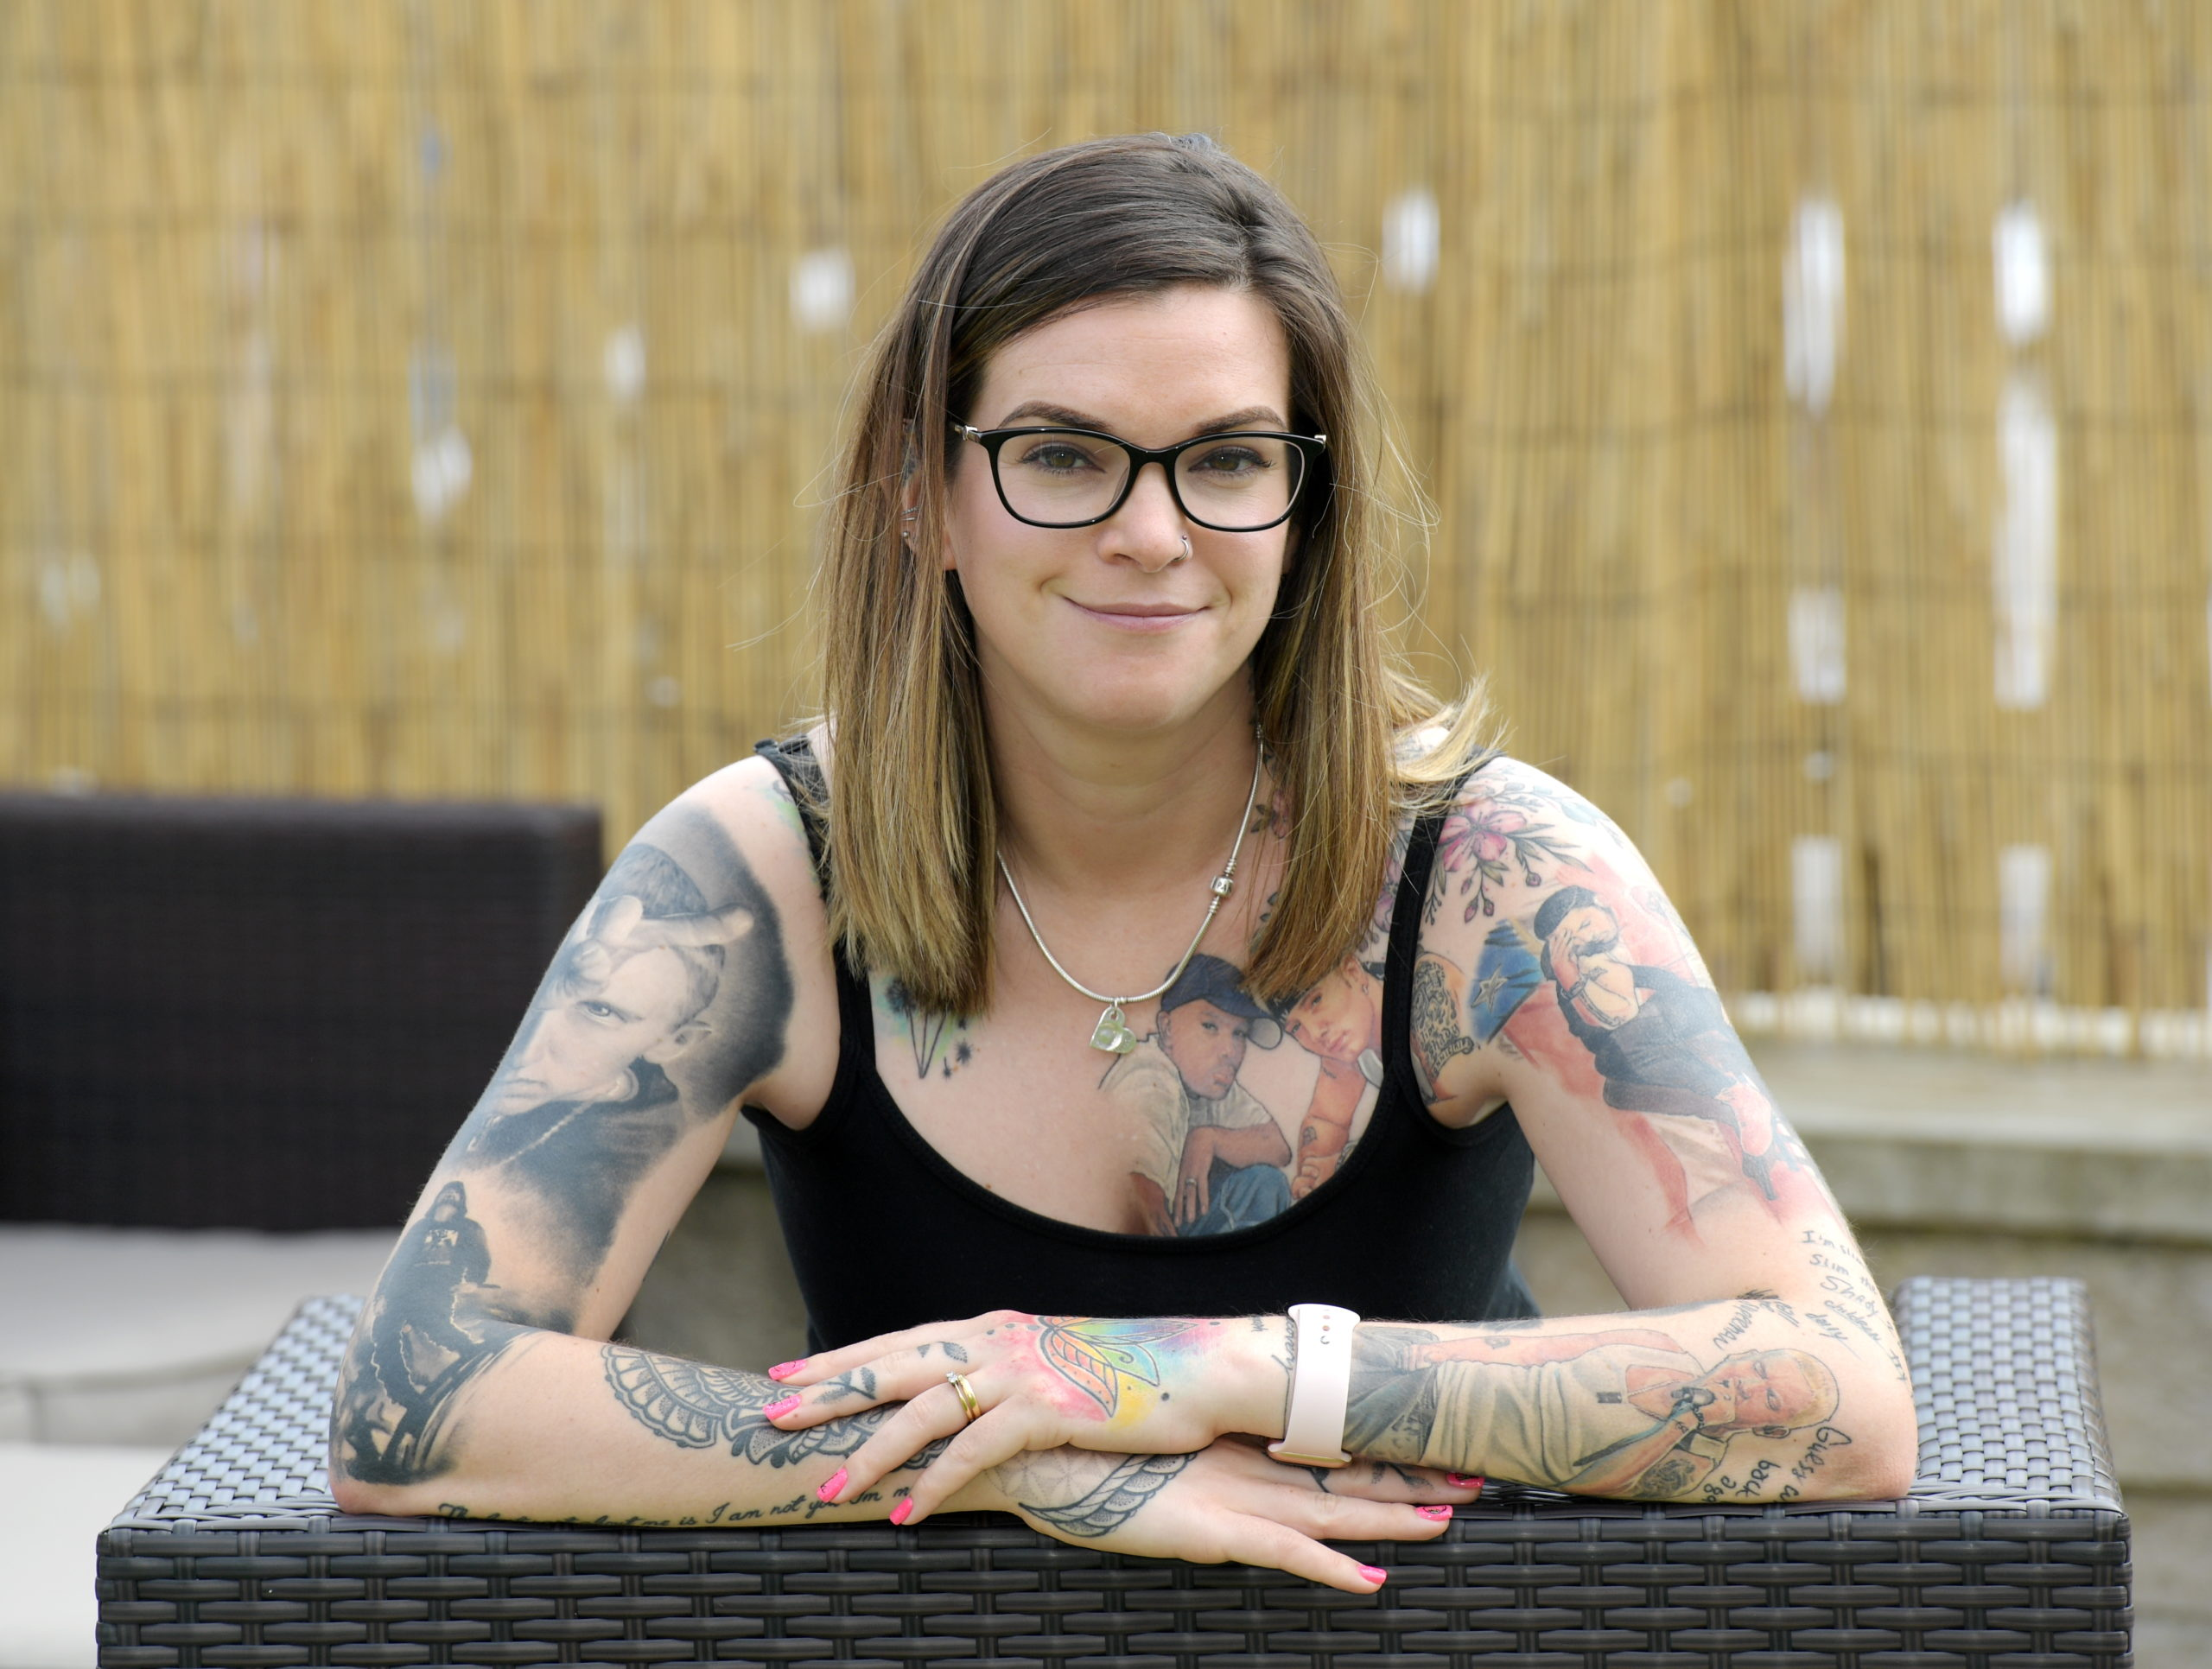 Nikki Paterson has broken the world record for the most tattoos of a musician on her body